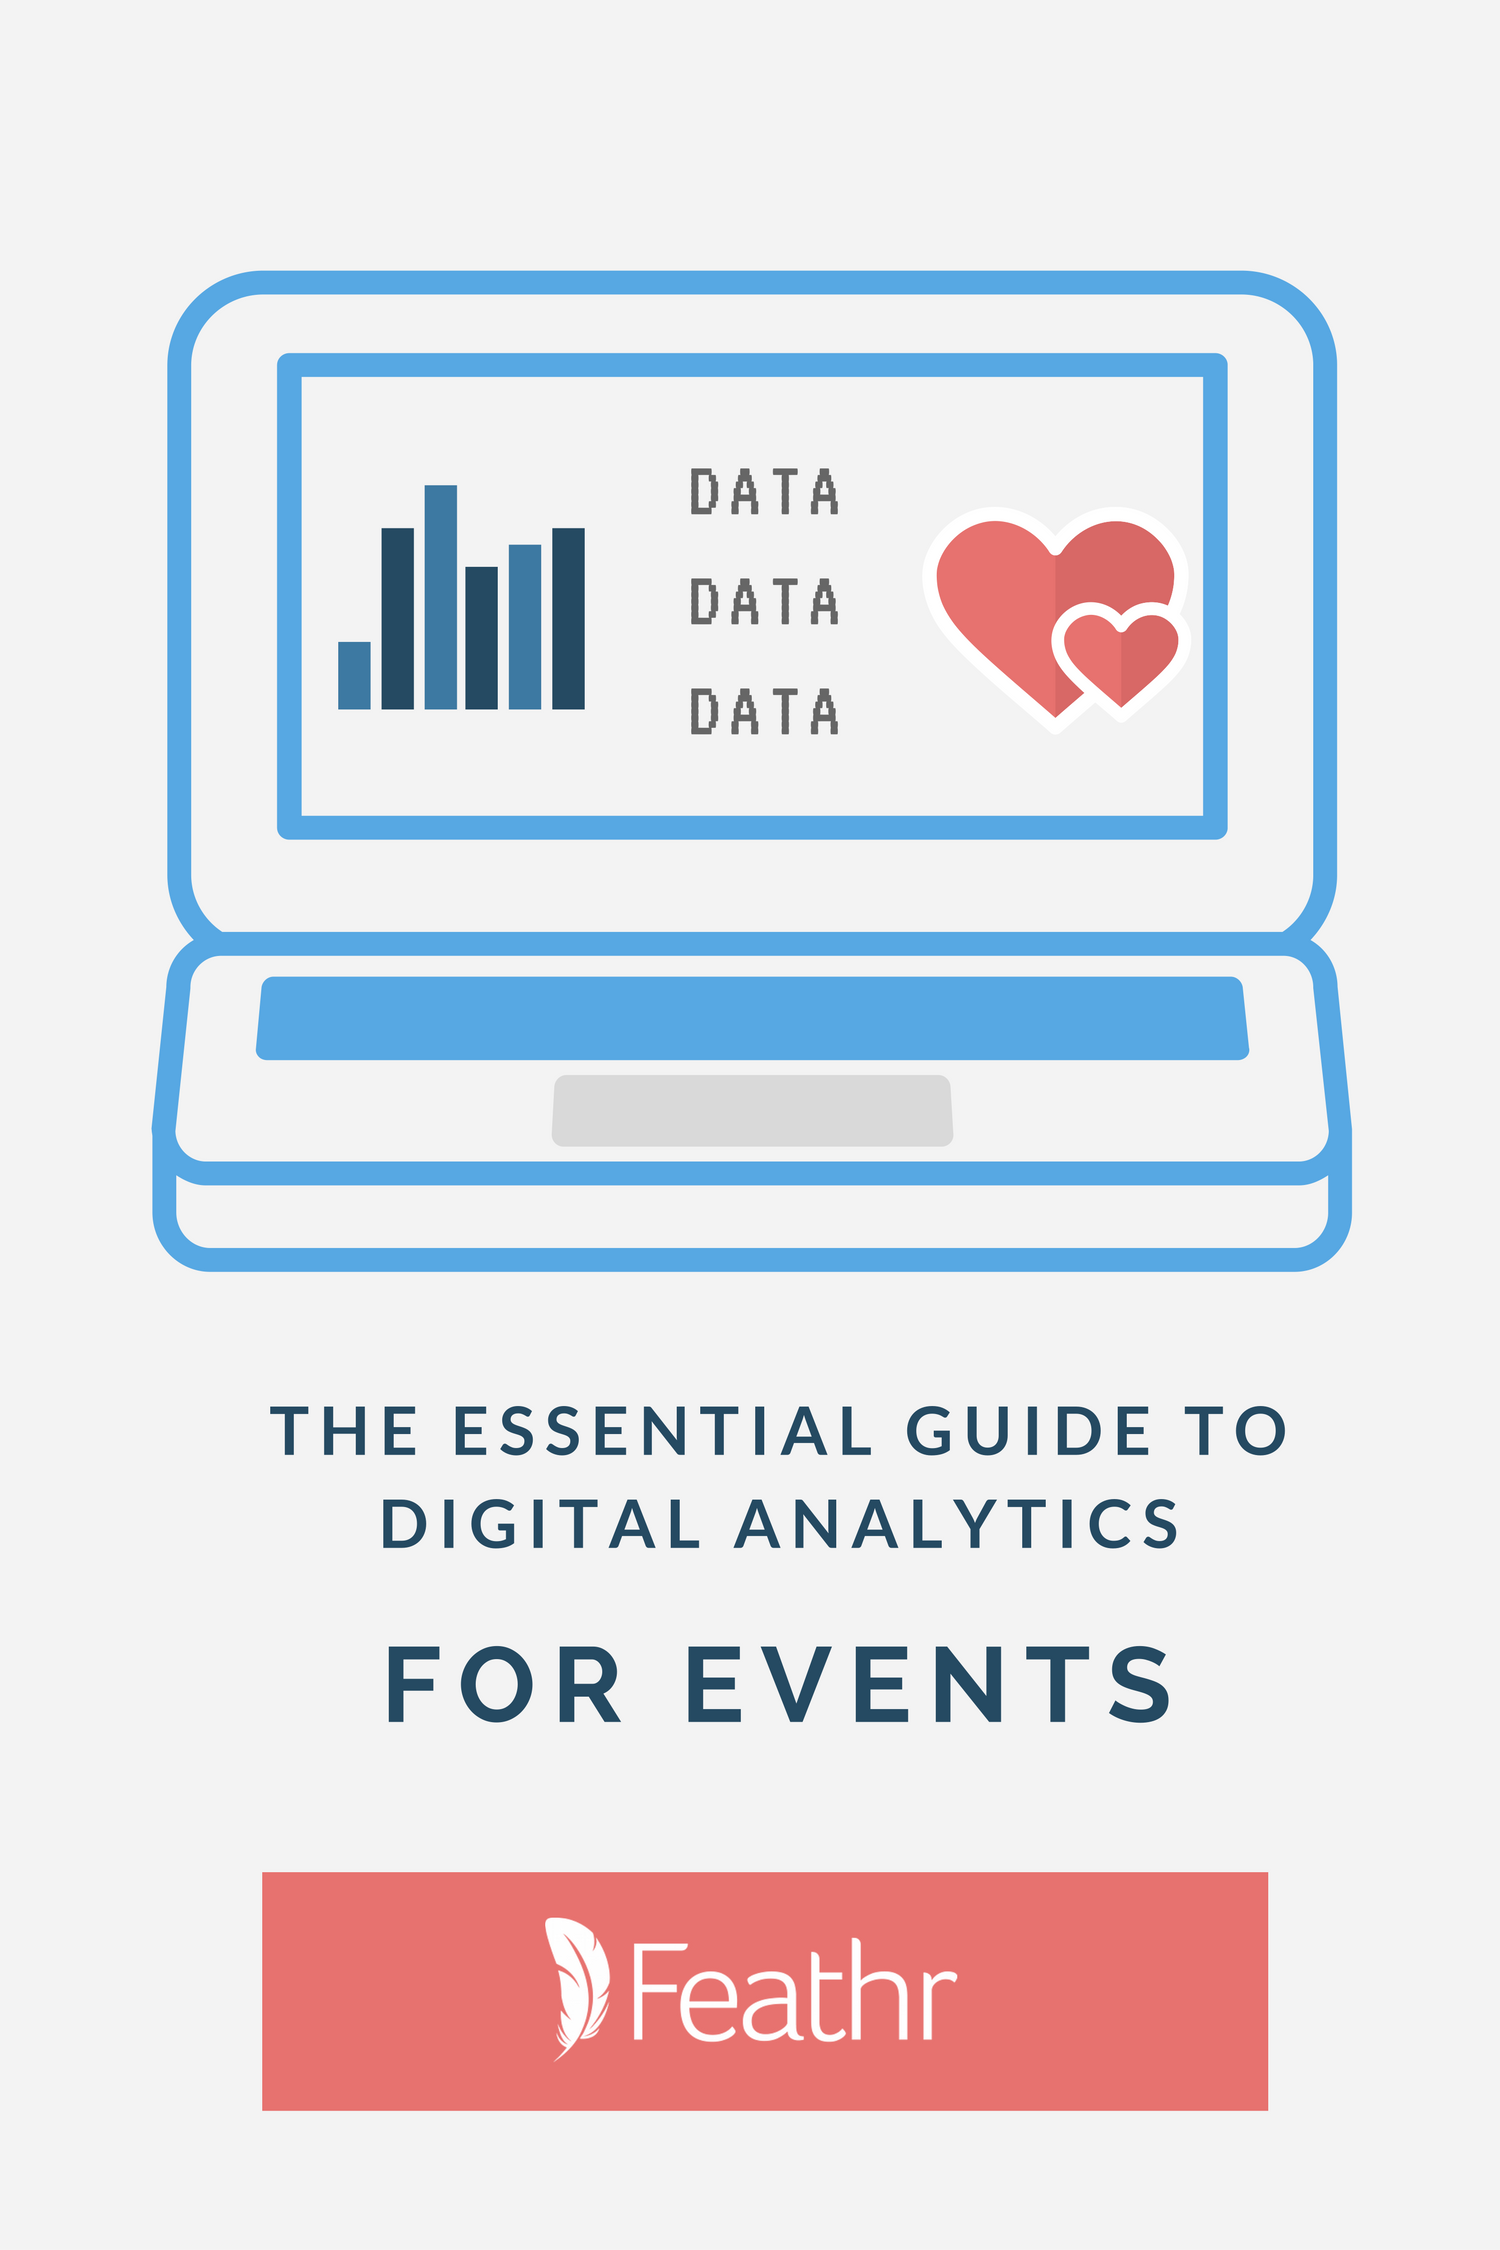 The Essential Guide to Digital Analytics for Events